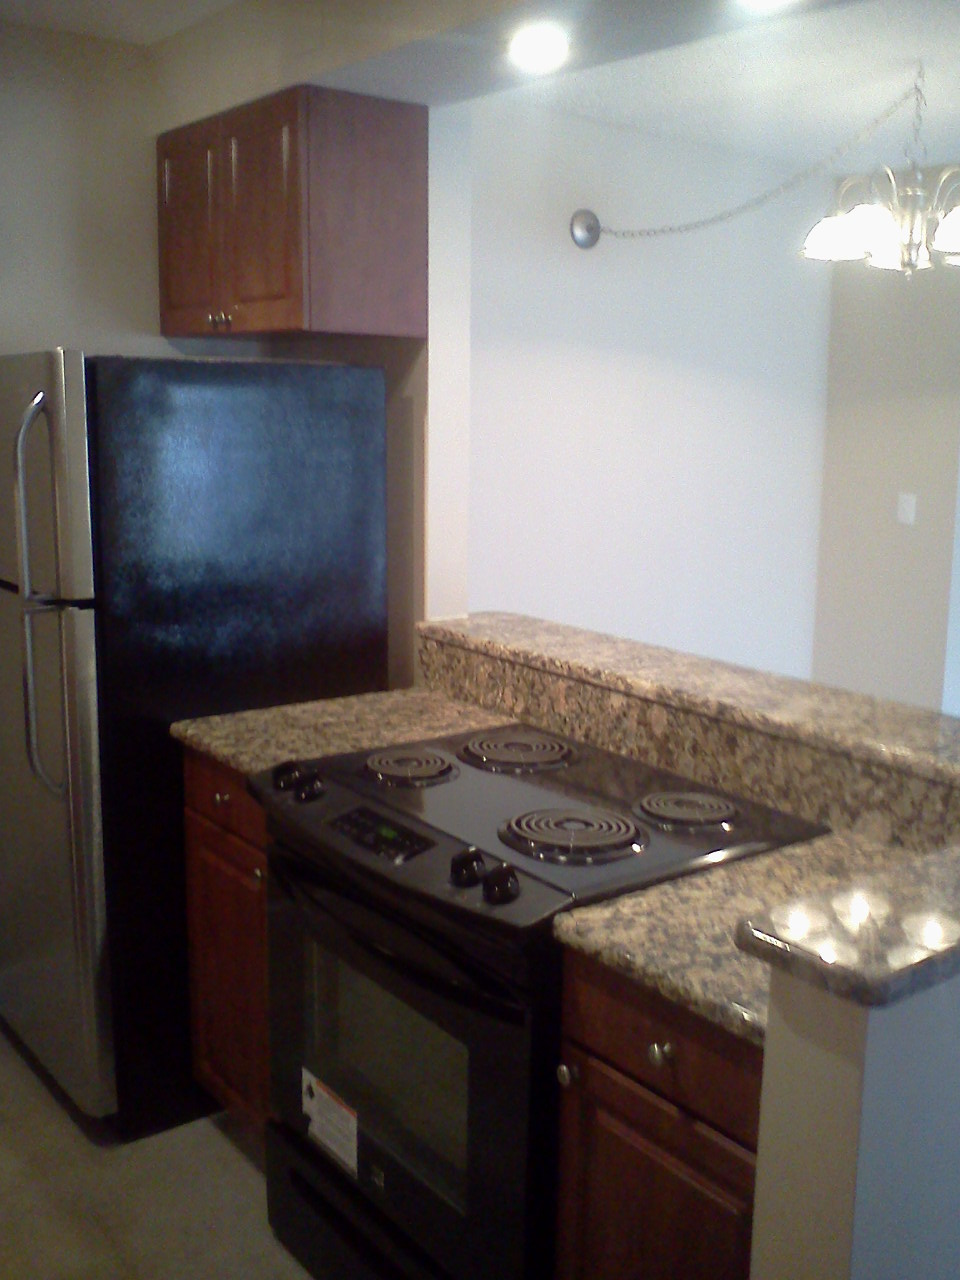 Kitchen at the WestShore Apartments in Tampa, FL